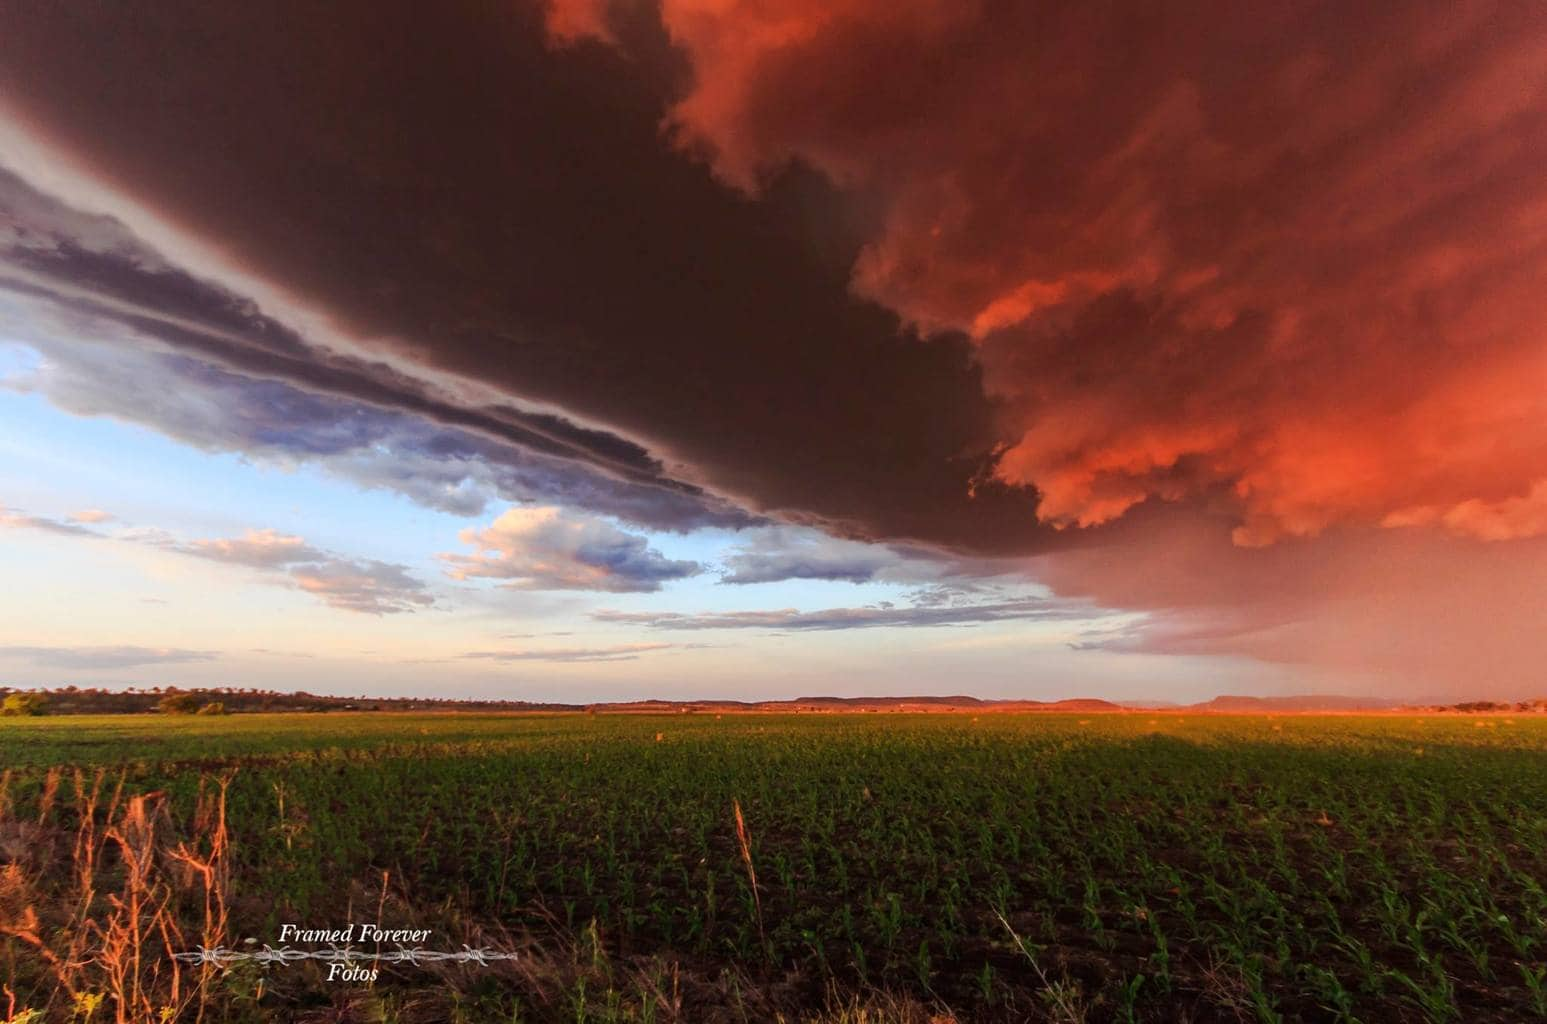 Taken out a Warwick SEQld Australia Last season, waiting patiently for this season to roll on. We followed this storm from Warwick to Allora as the sun went down the colours lit the sky up.